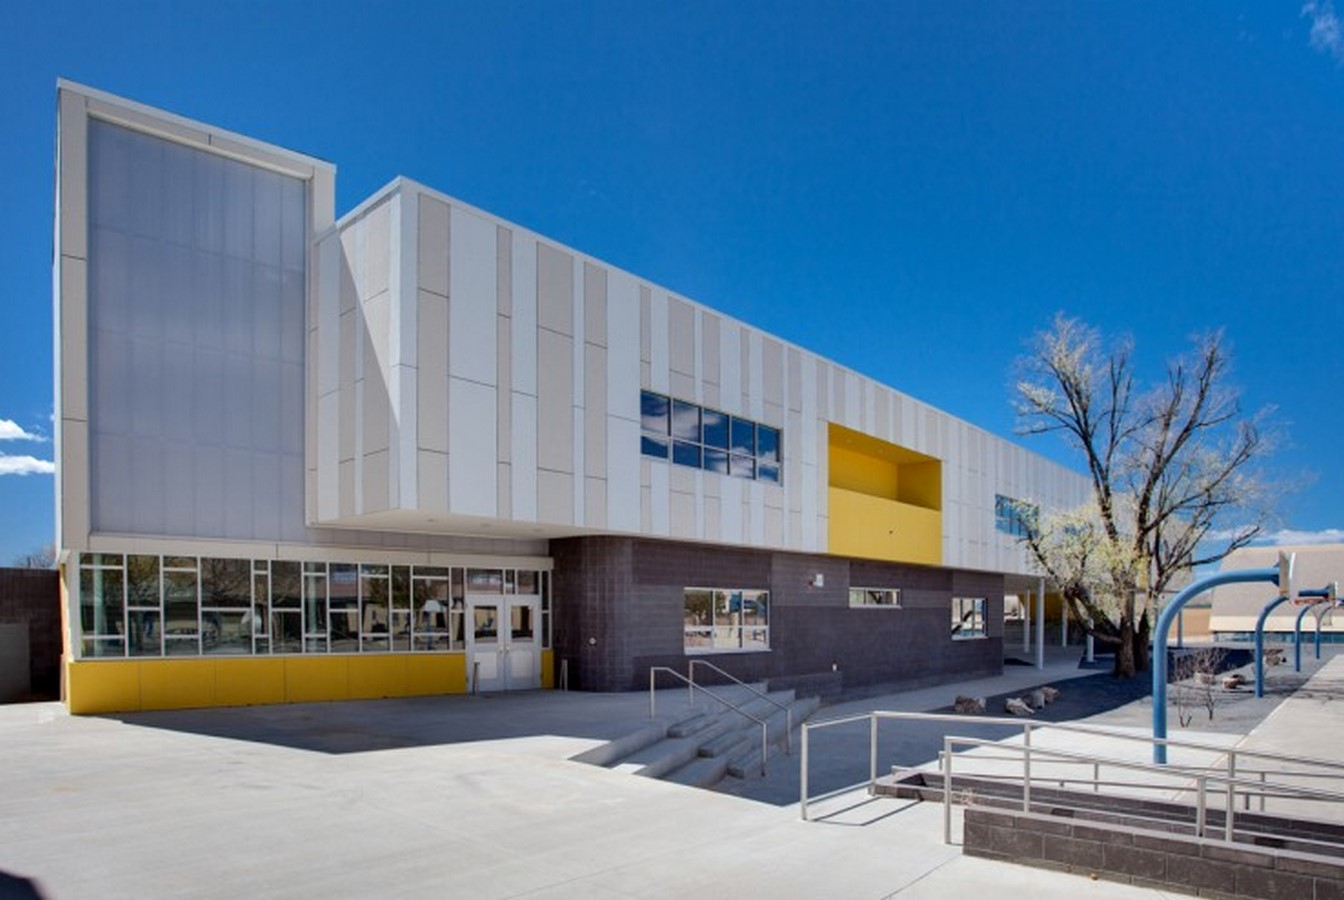 Architects in Albuquerque- Top 70 Architects in Albuquerque - Sheet3